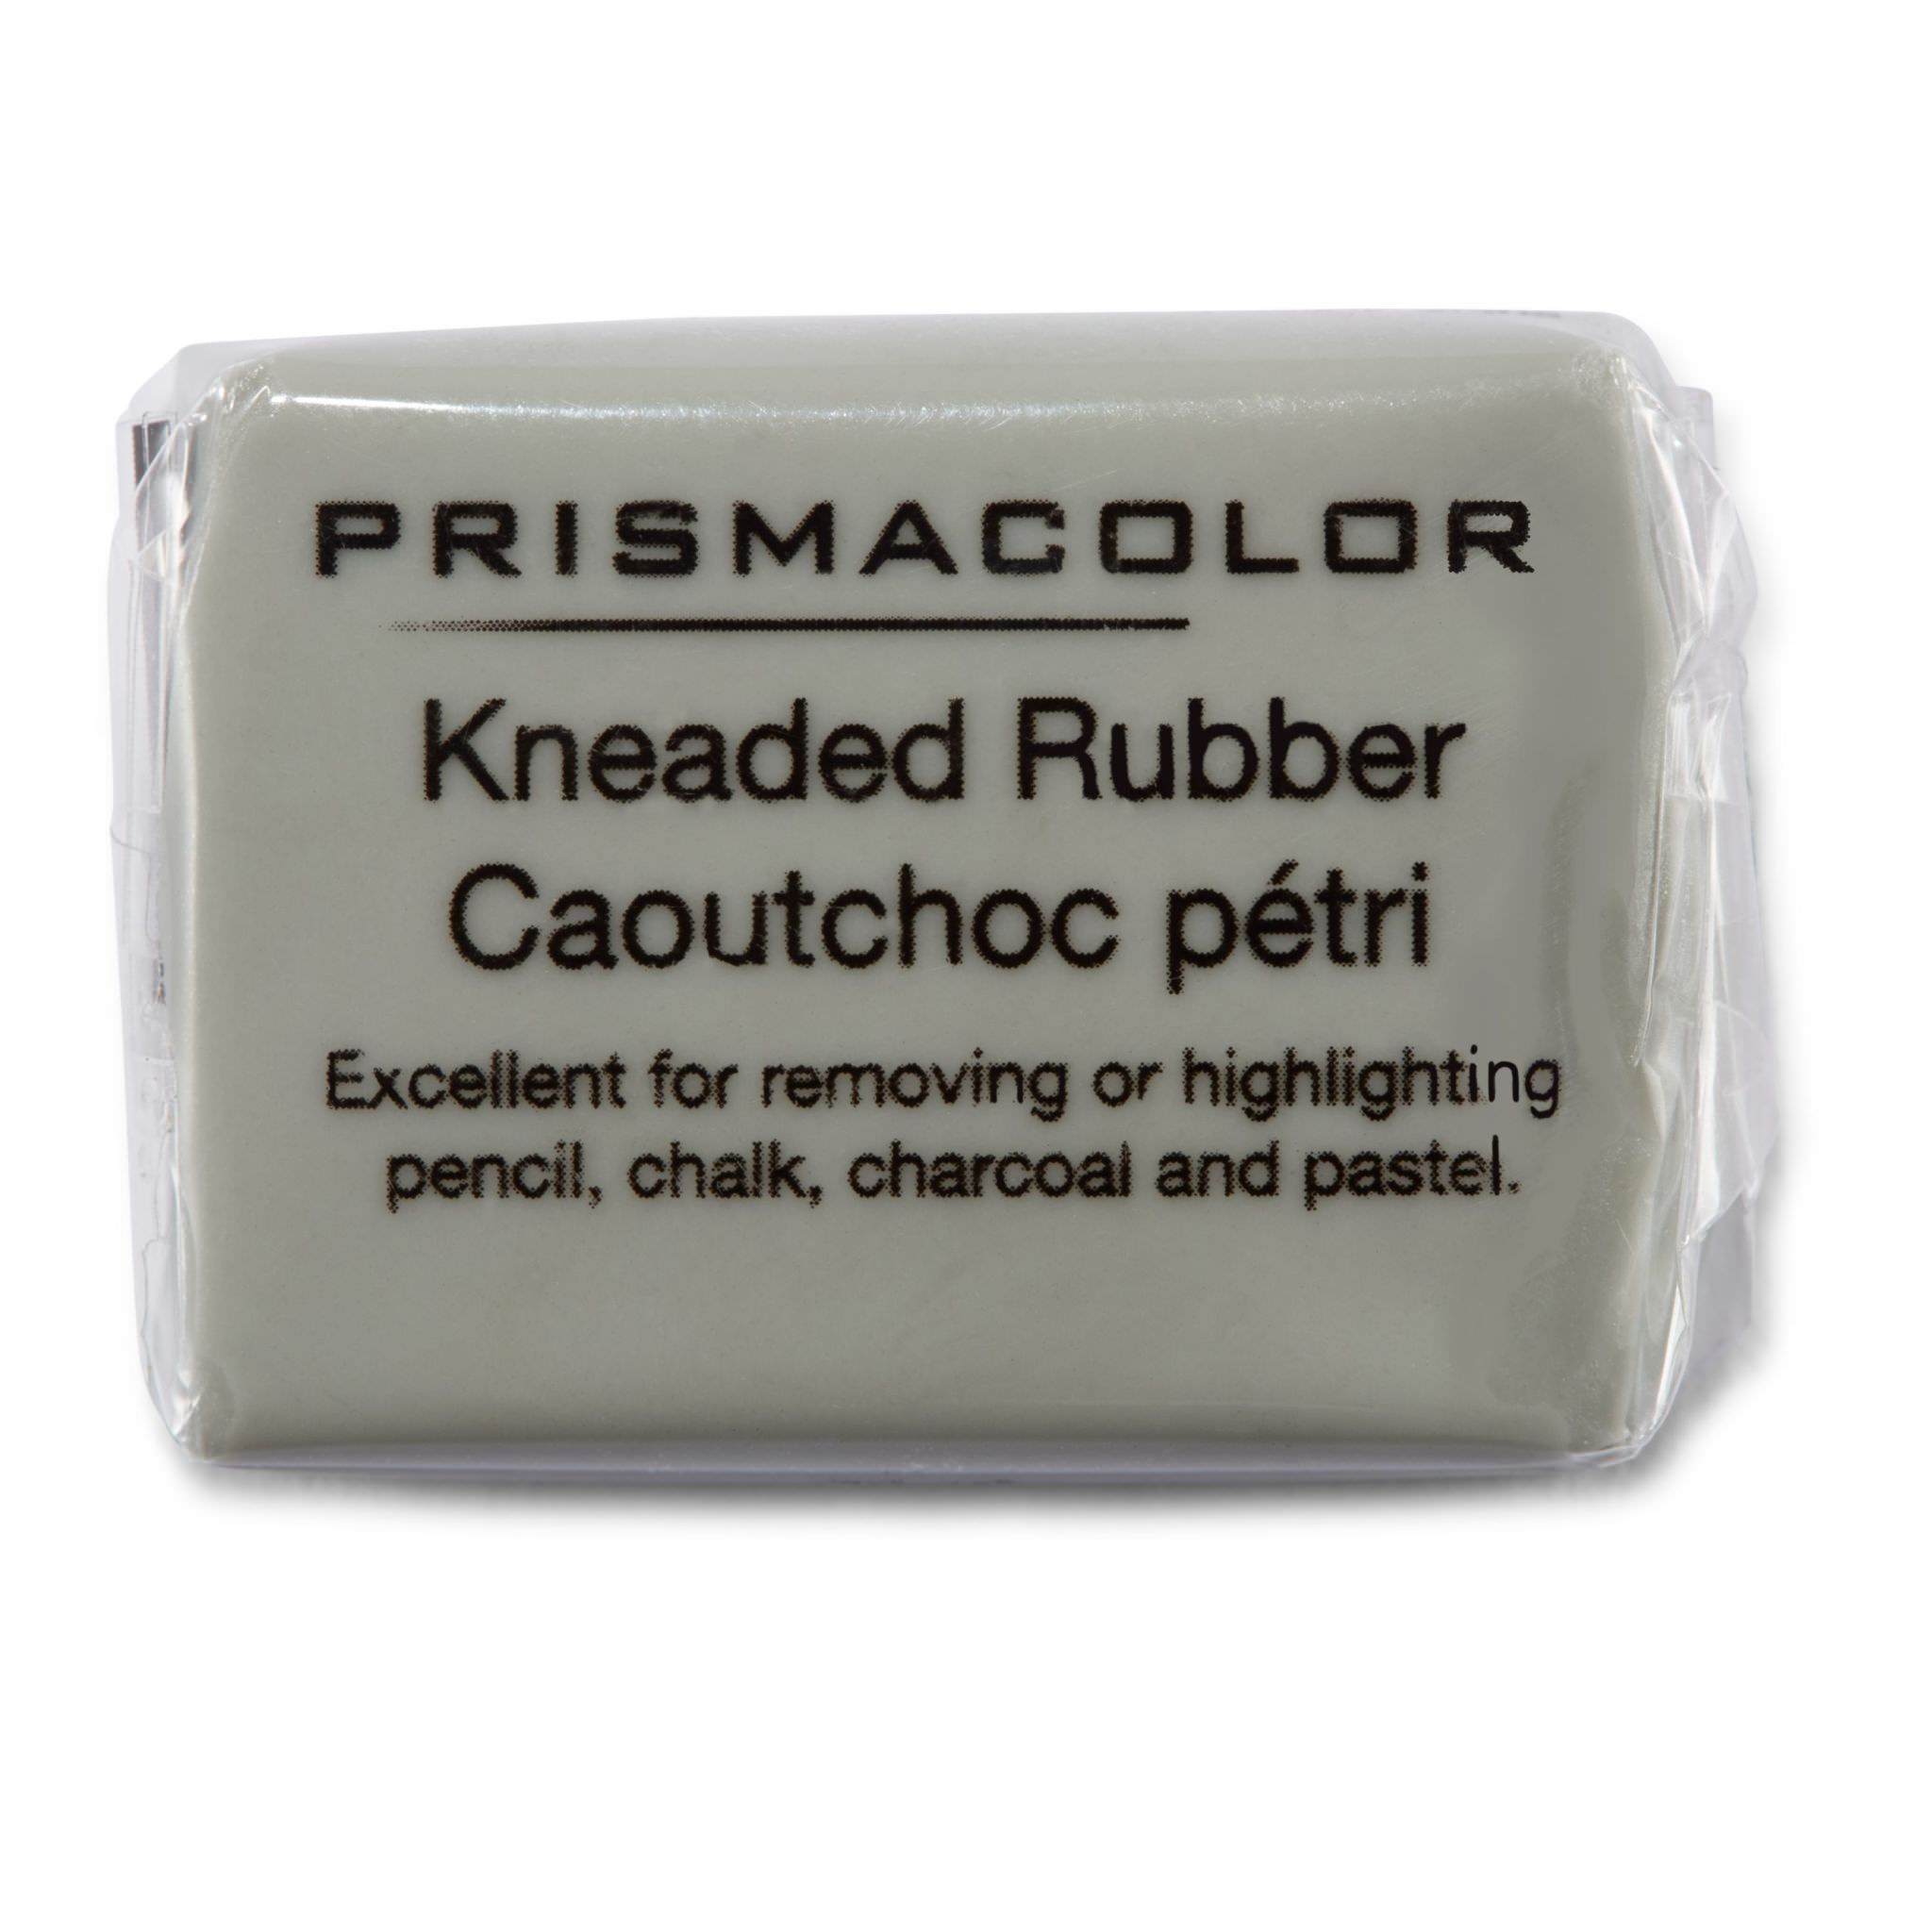 """Prismacolor Kneaded Erasers, 1.25"""" x 0.75""\ by Newell Brands"